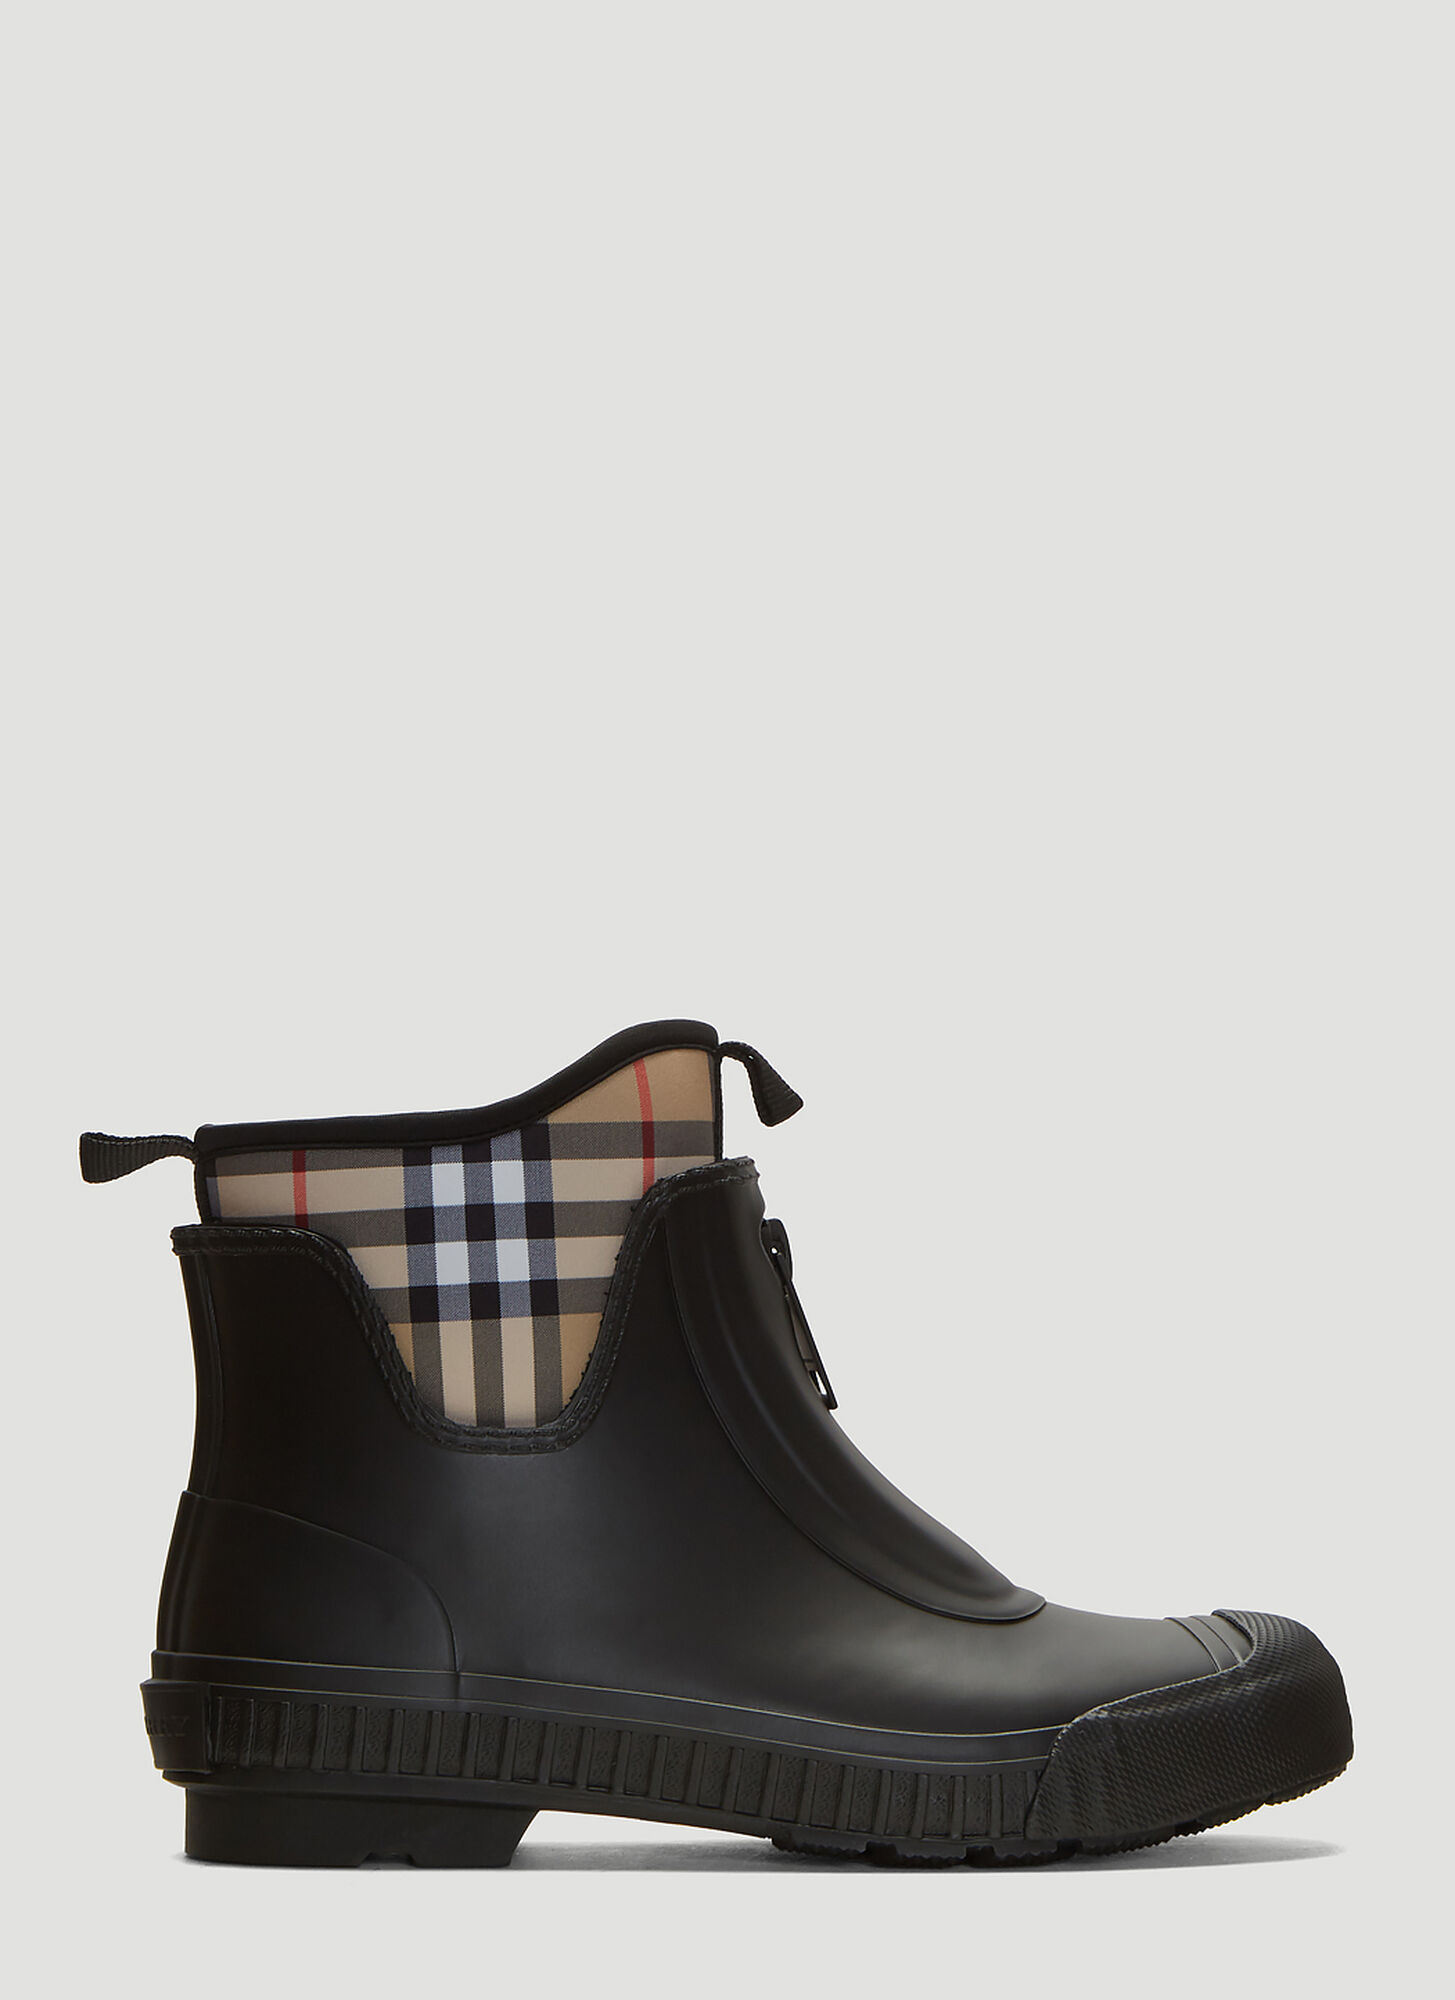 Burberry Vintage Check Rain Boots in Black